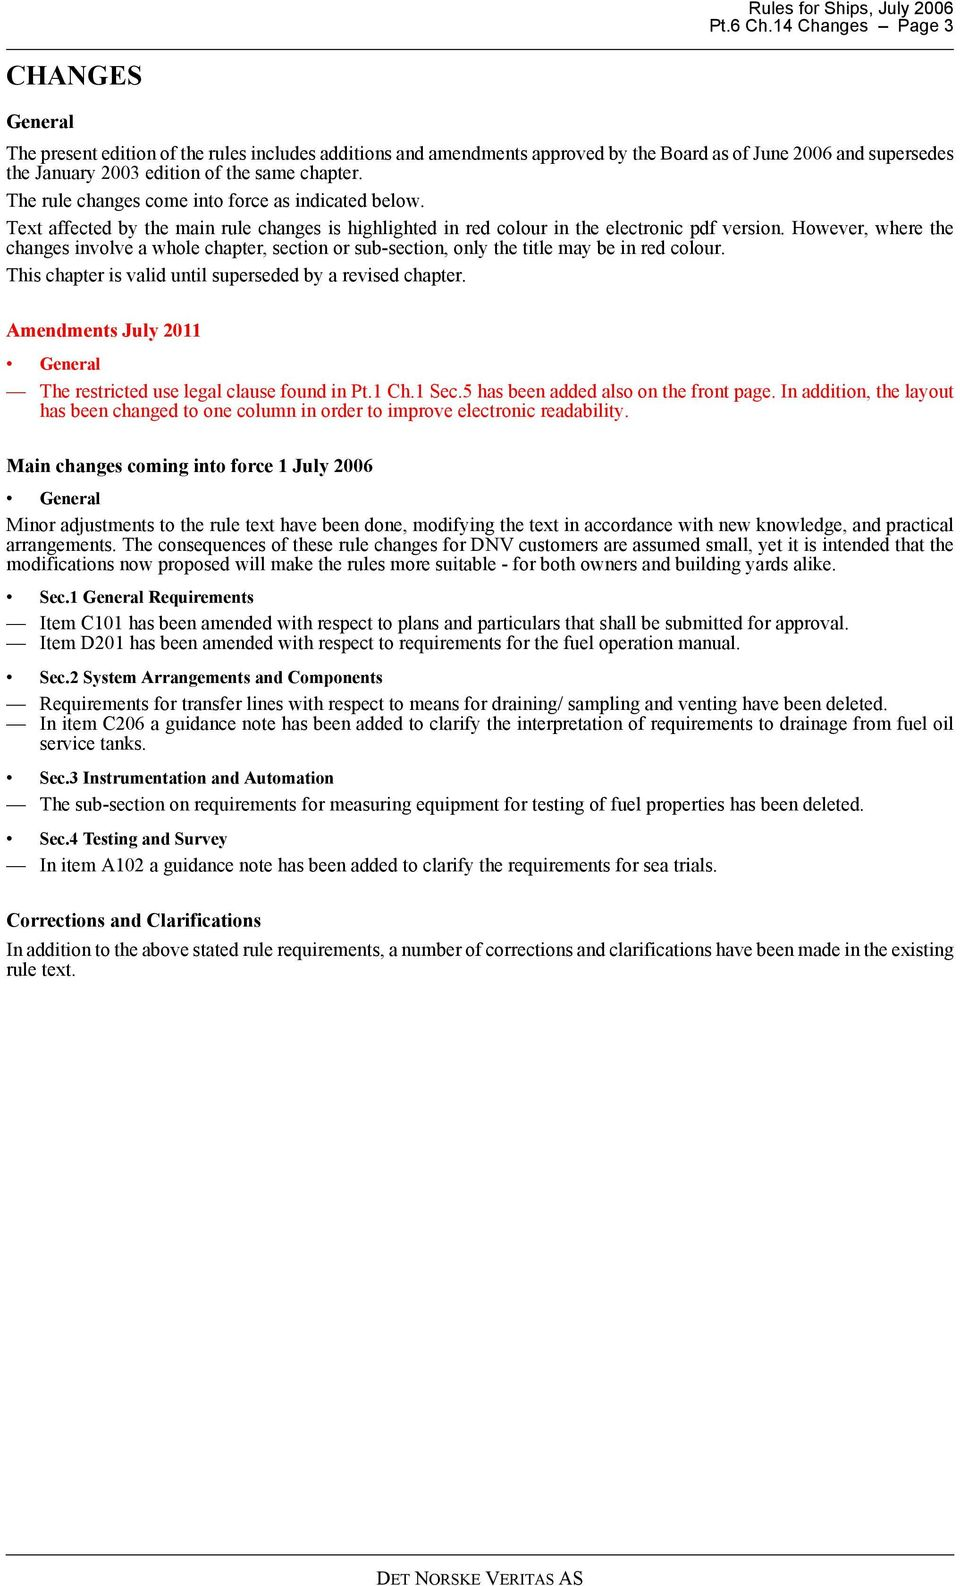 The rule changes come into force as indicated below. Text affected by the main rule changes is highlighted in red colour in the electronic pdf version.